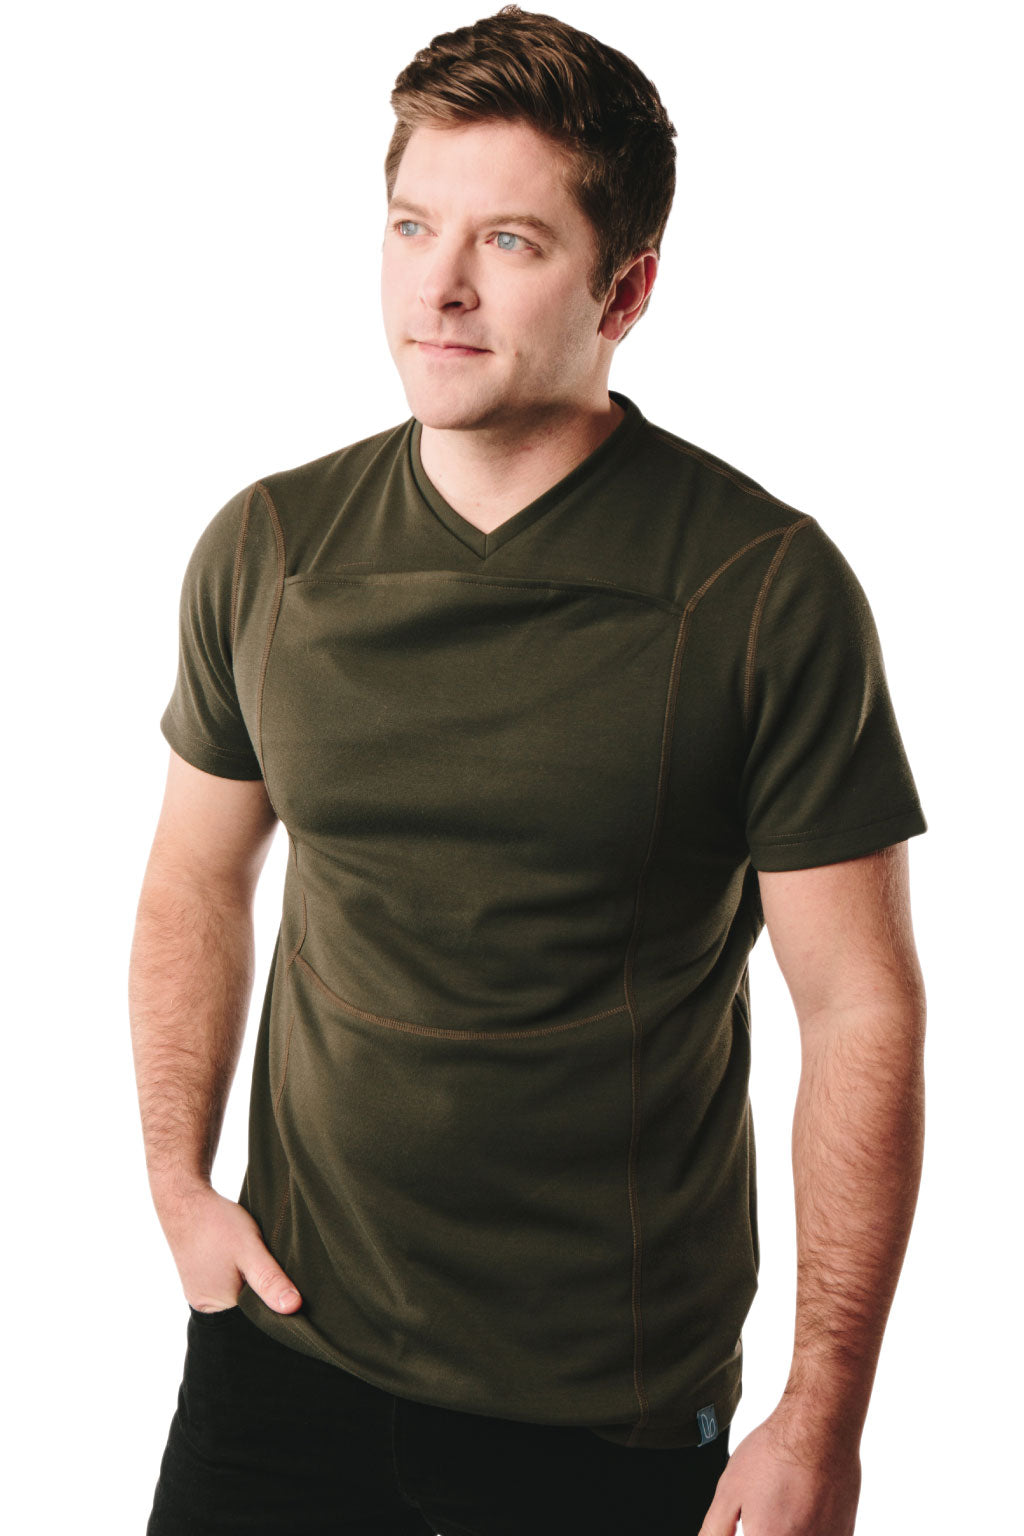 Dad Shirt™ Serene Green Limited Edition